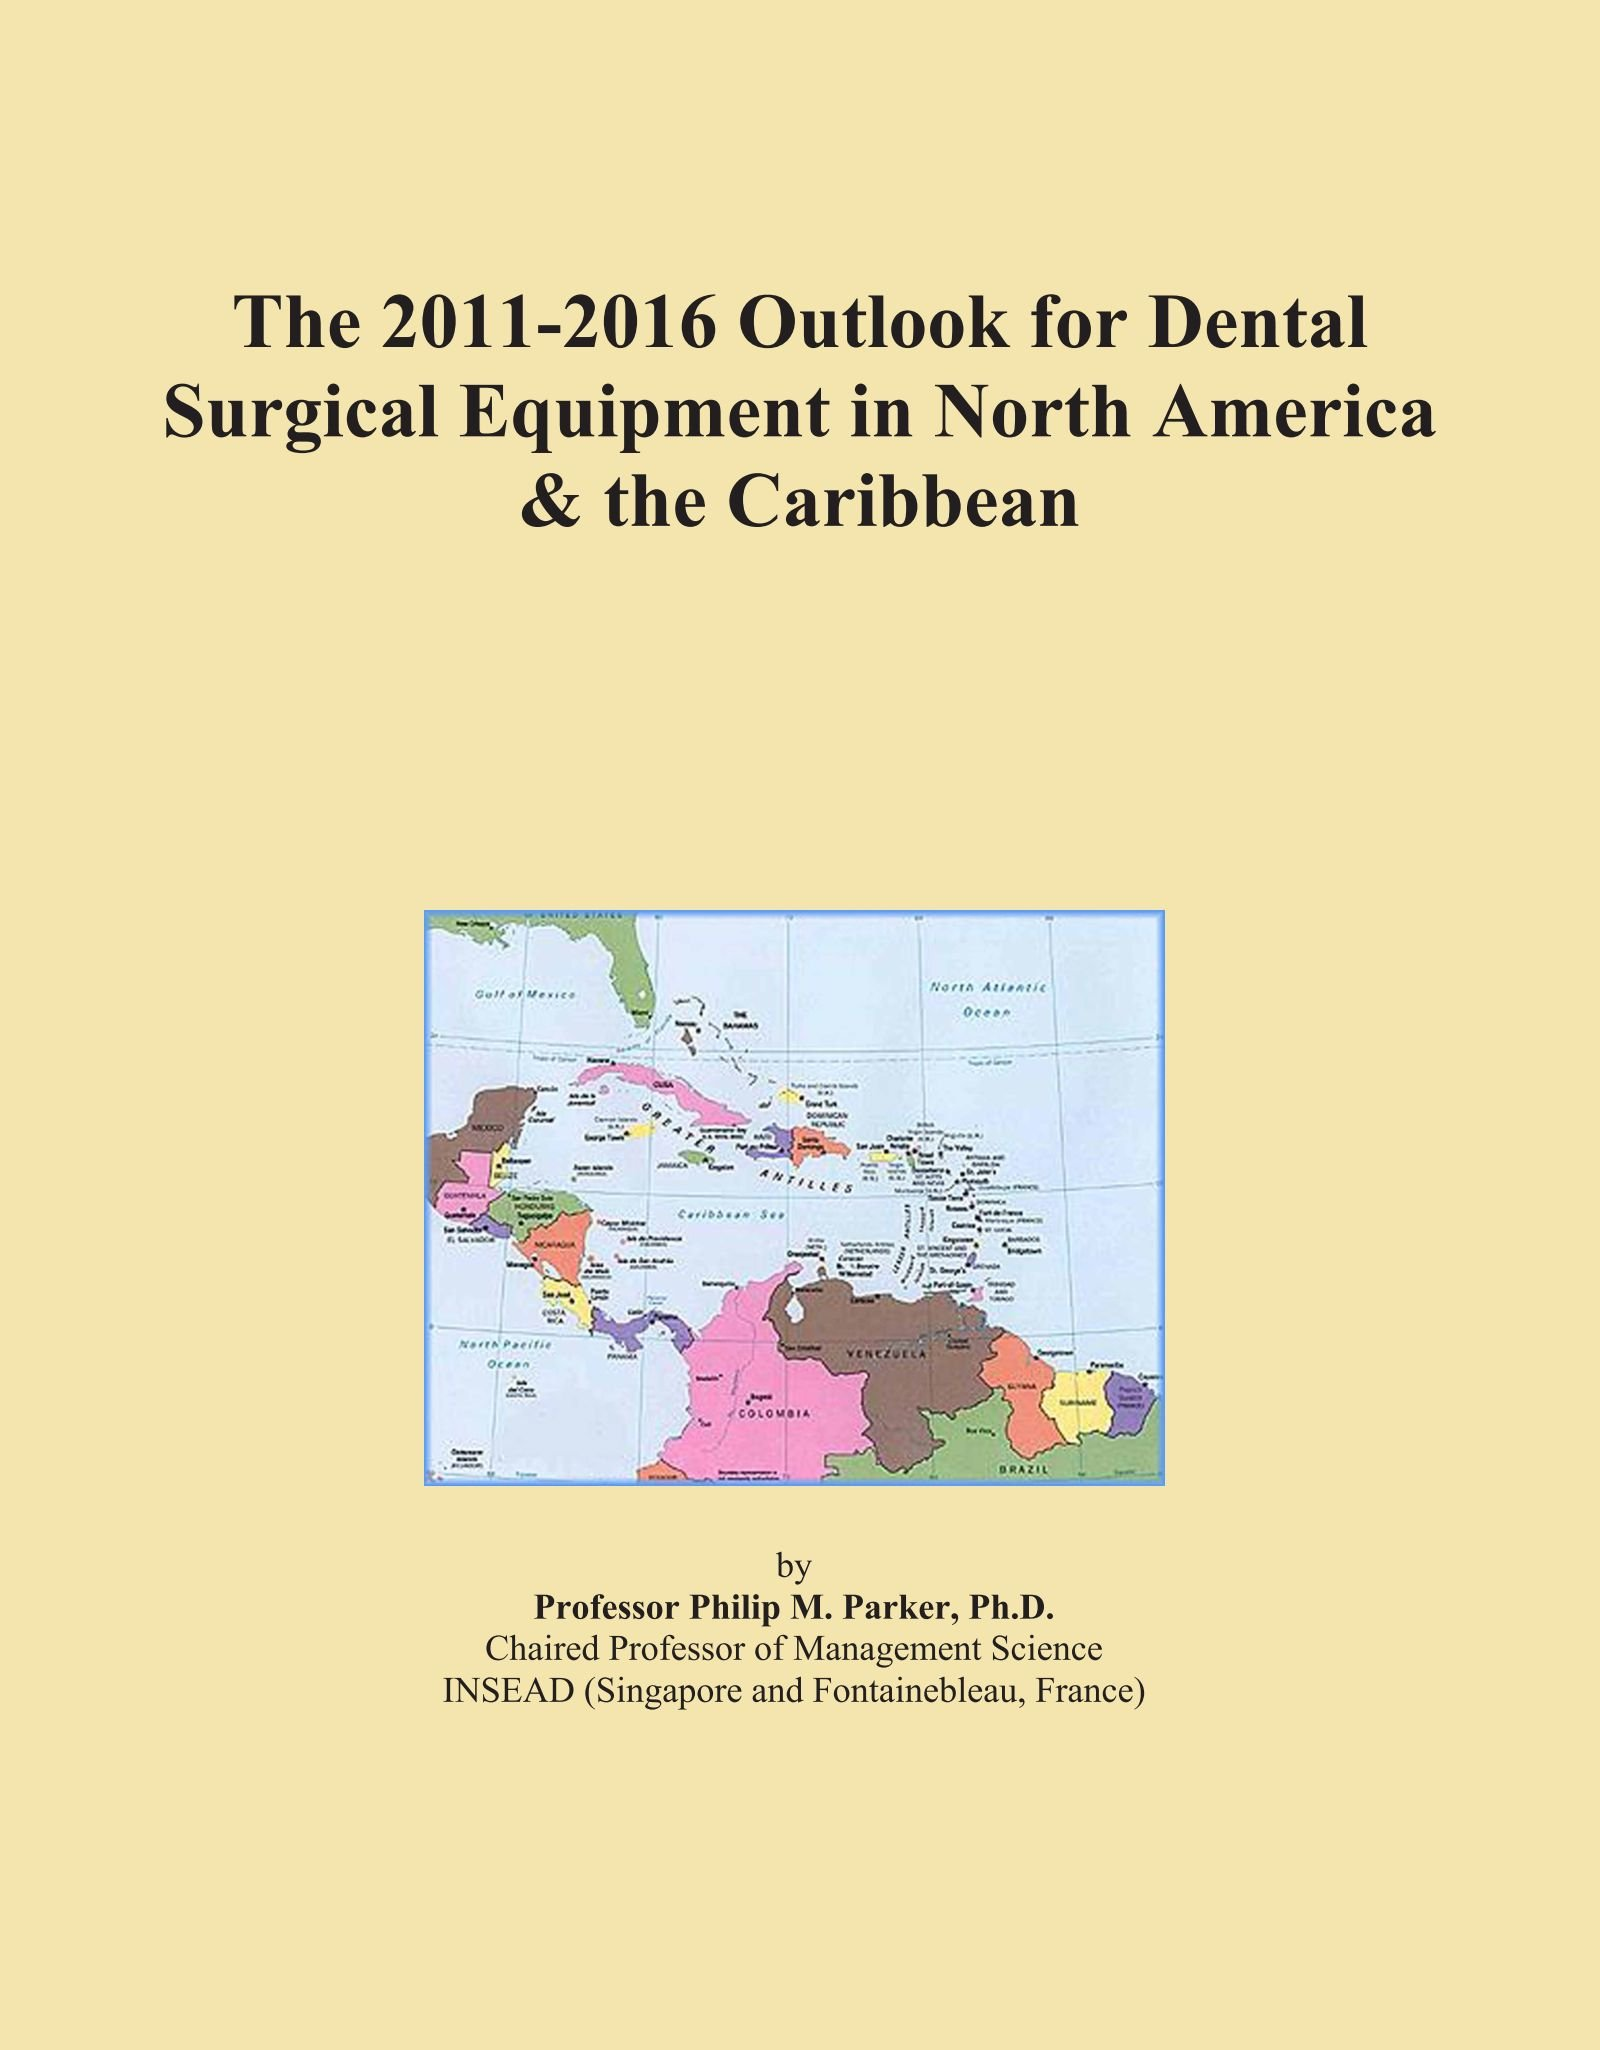 The 2011-2016 Outlook for Dental Surgical Equipment in North America & the Caribbean